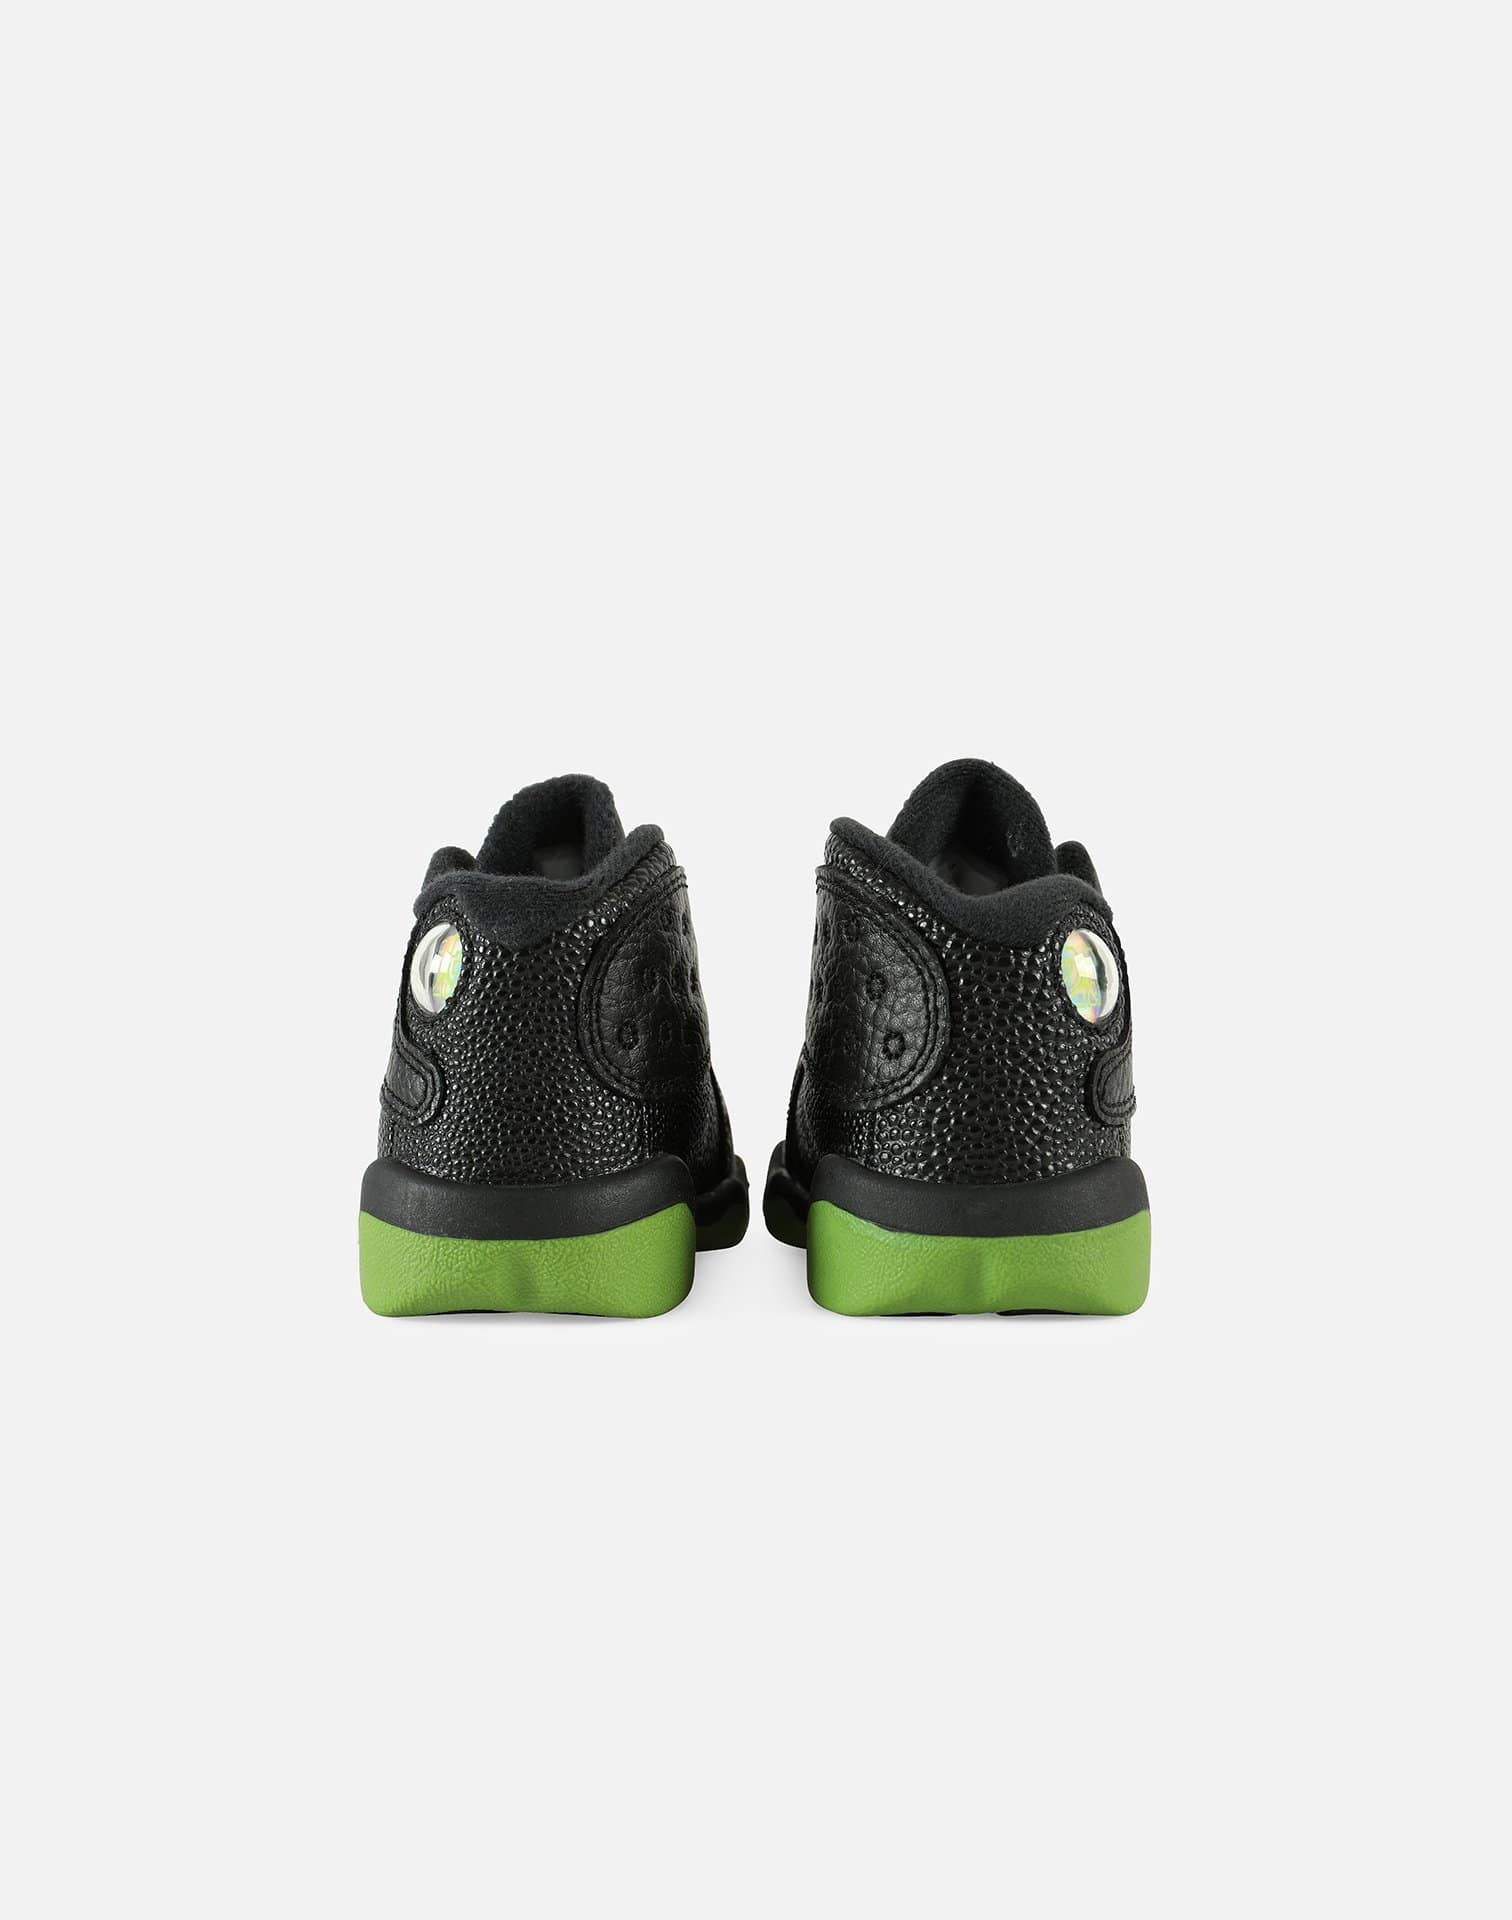 Jordan Air Jordan 13 Retro 'Altitude' Infant